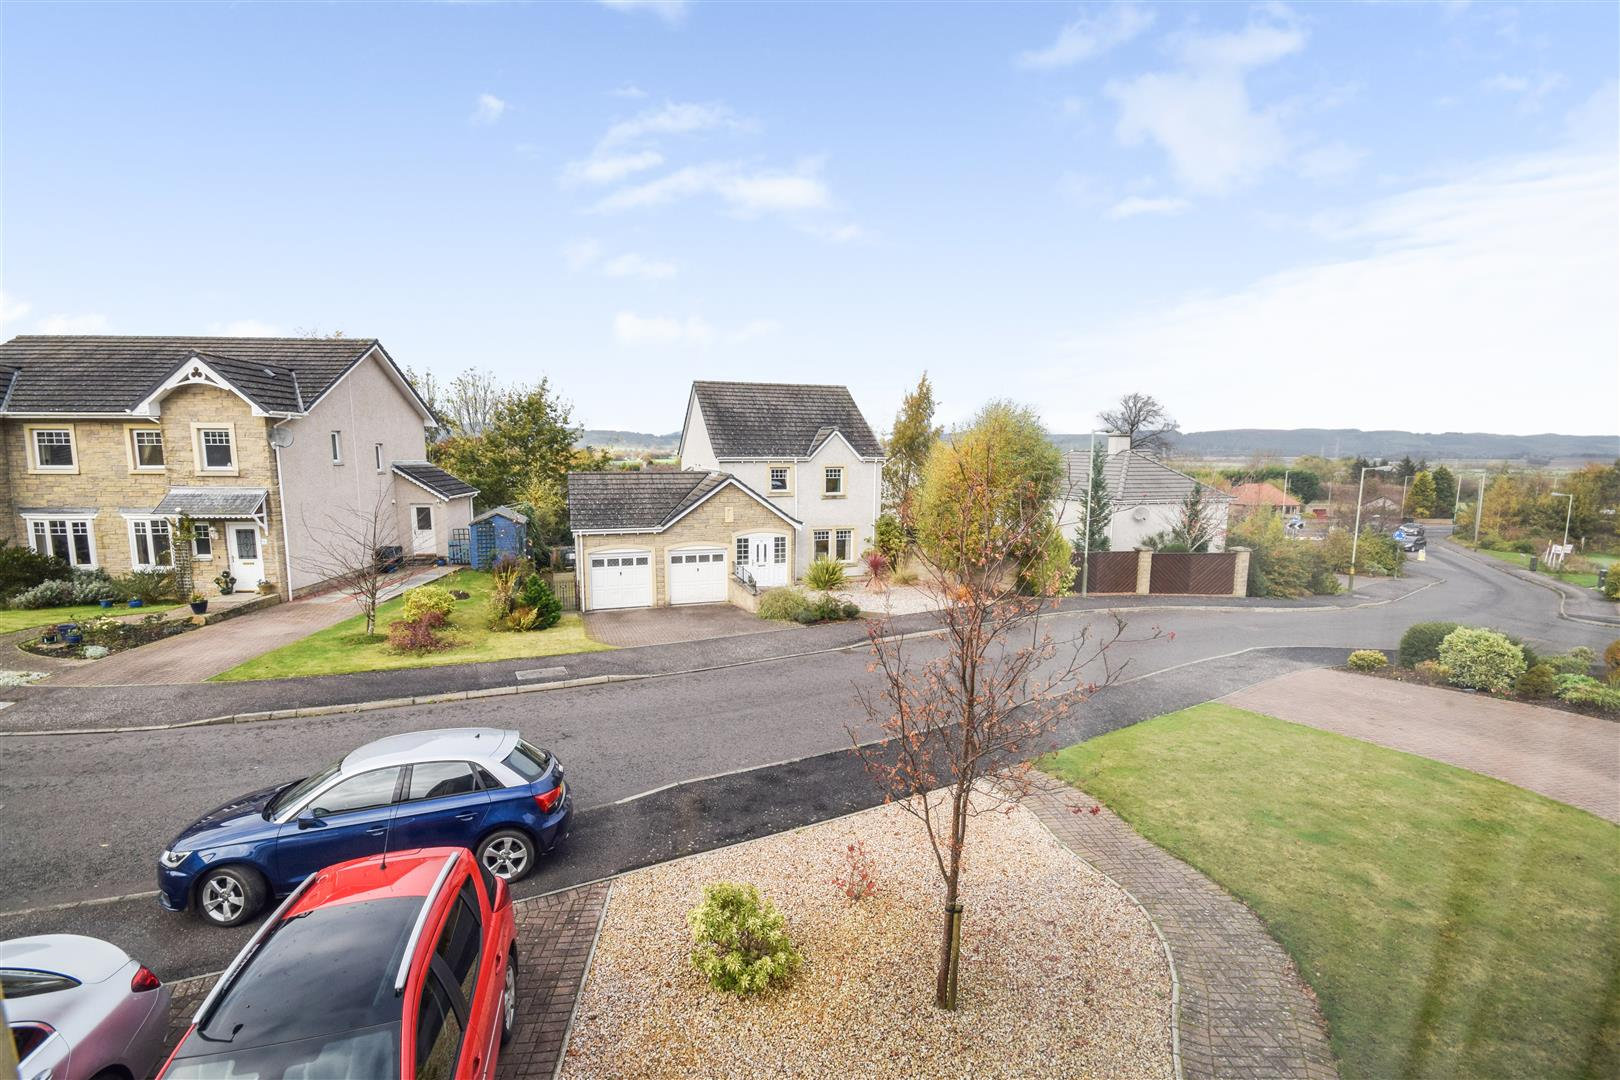 32, Brandywell Road, Abernethy, Perth, Perthshire, PH2 9GY, UK